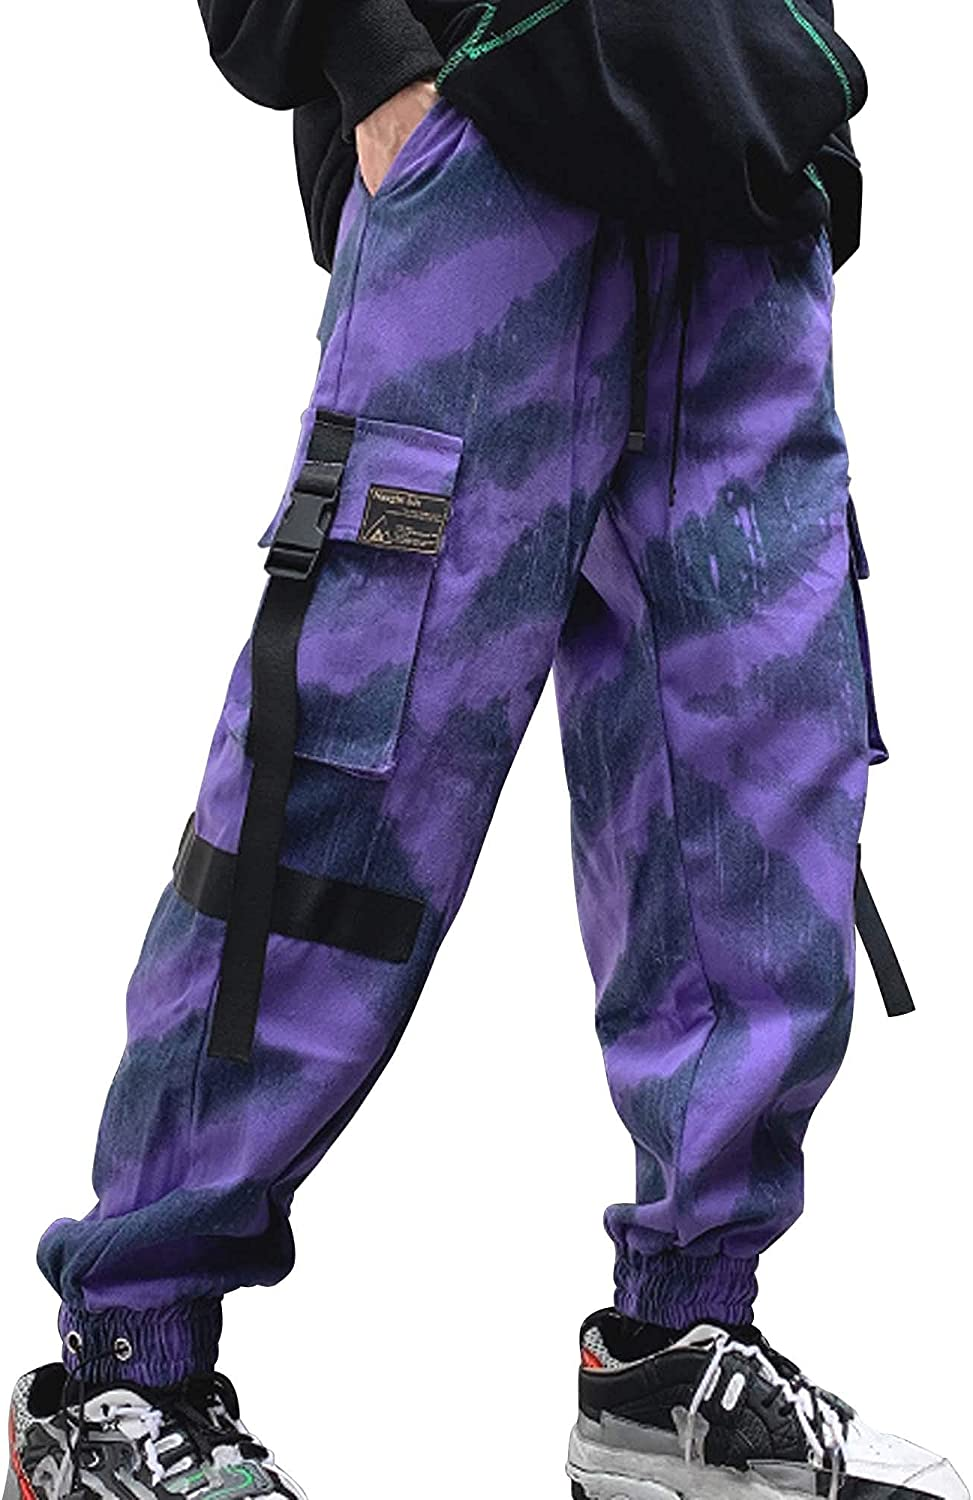 XYXIONGMAO Streetwear Harem Pants for Hop Men famous Hip Animer and price revision Techwear